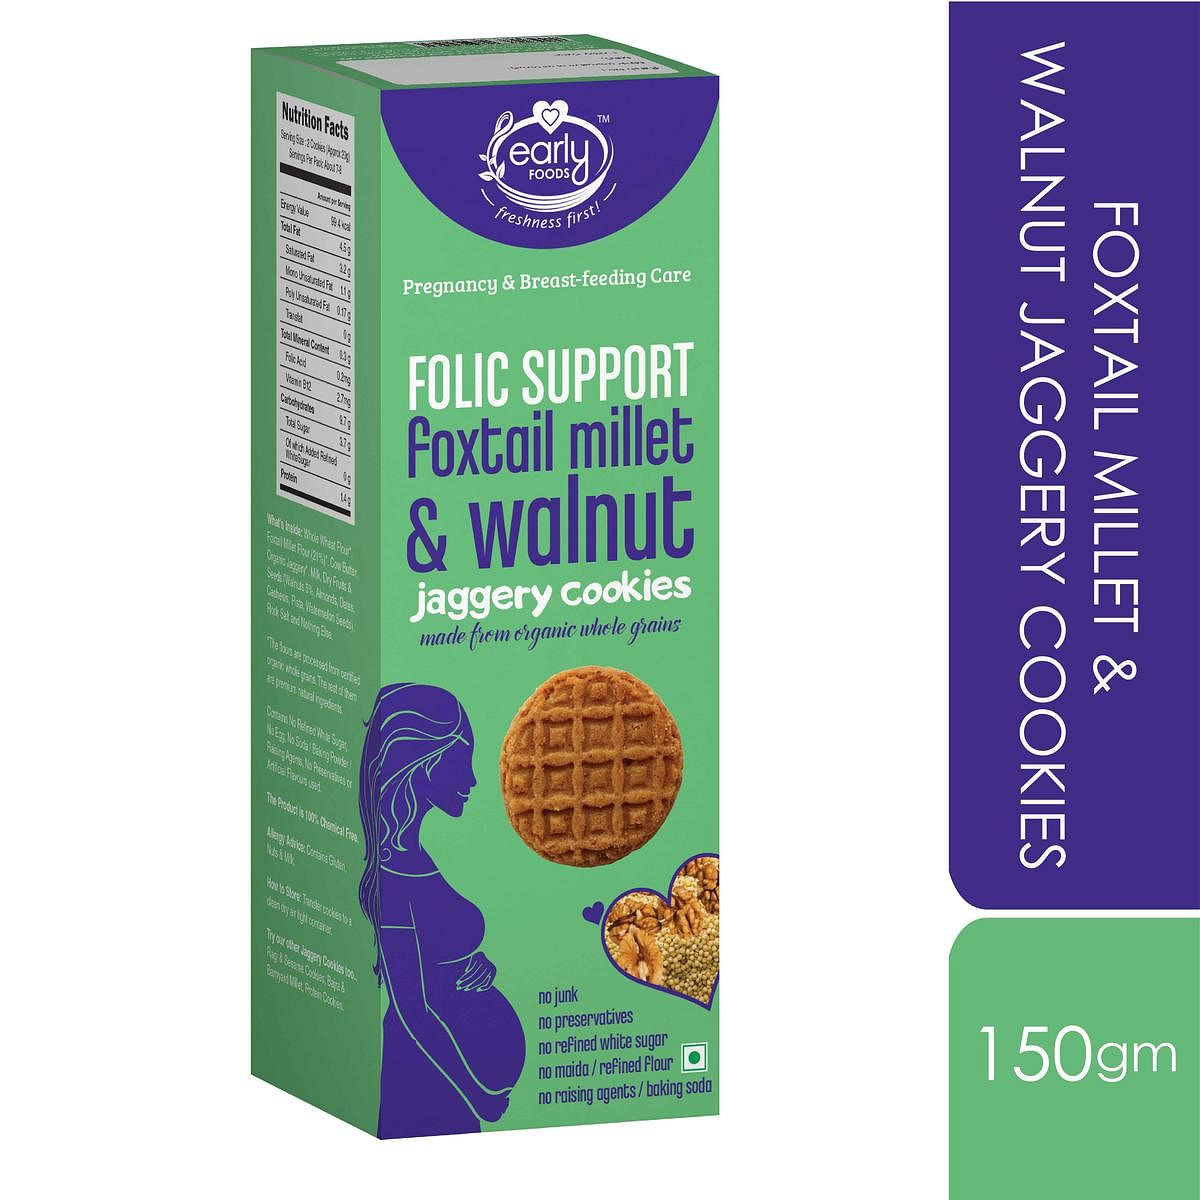 Early Foods - Foxtail Millet & Walnut Jaggery Cookies 150g